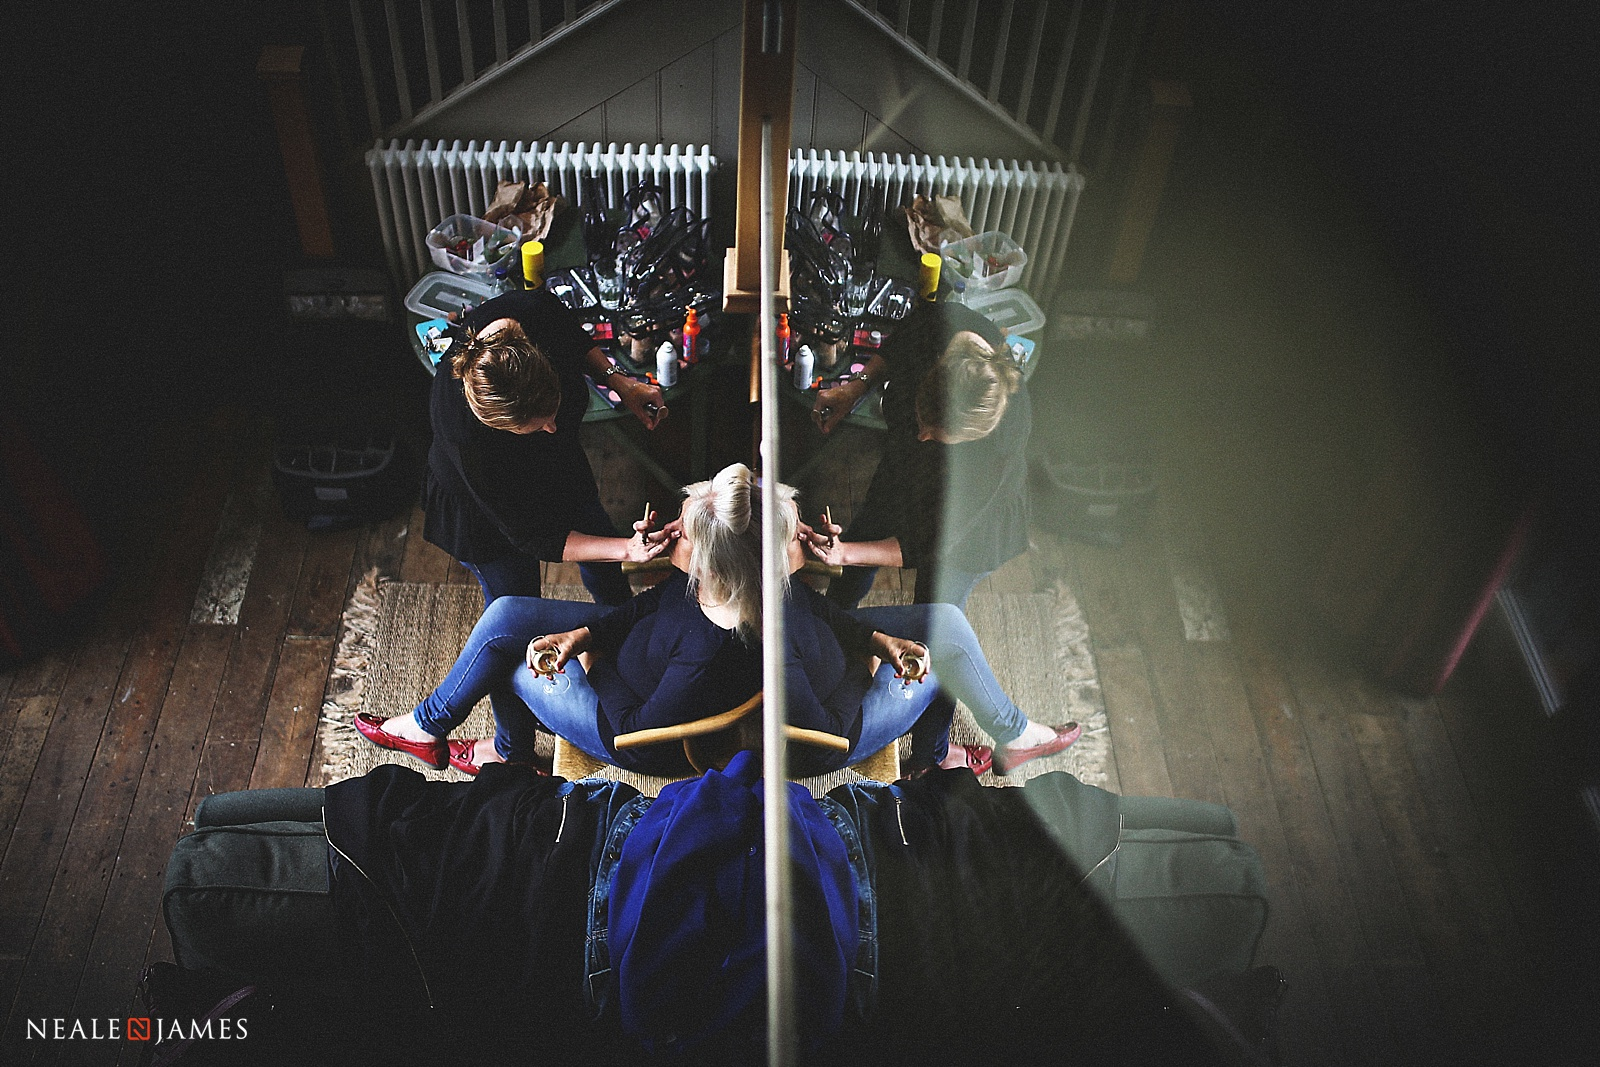 A reflection of a bride having makeup applied